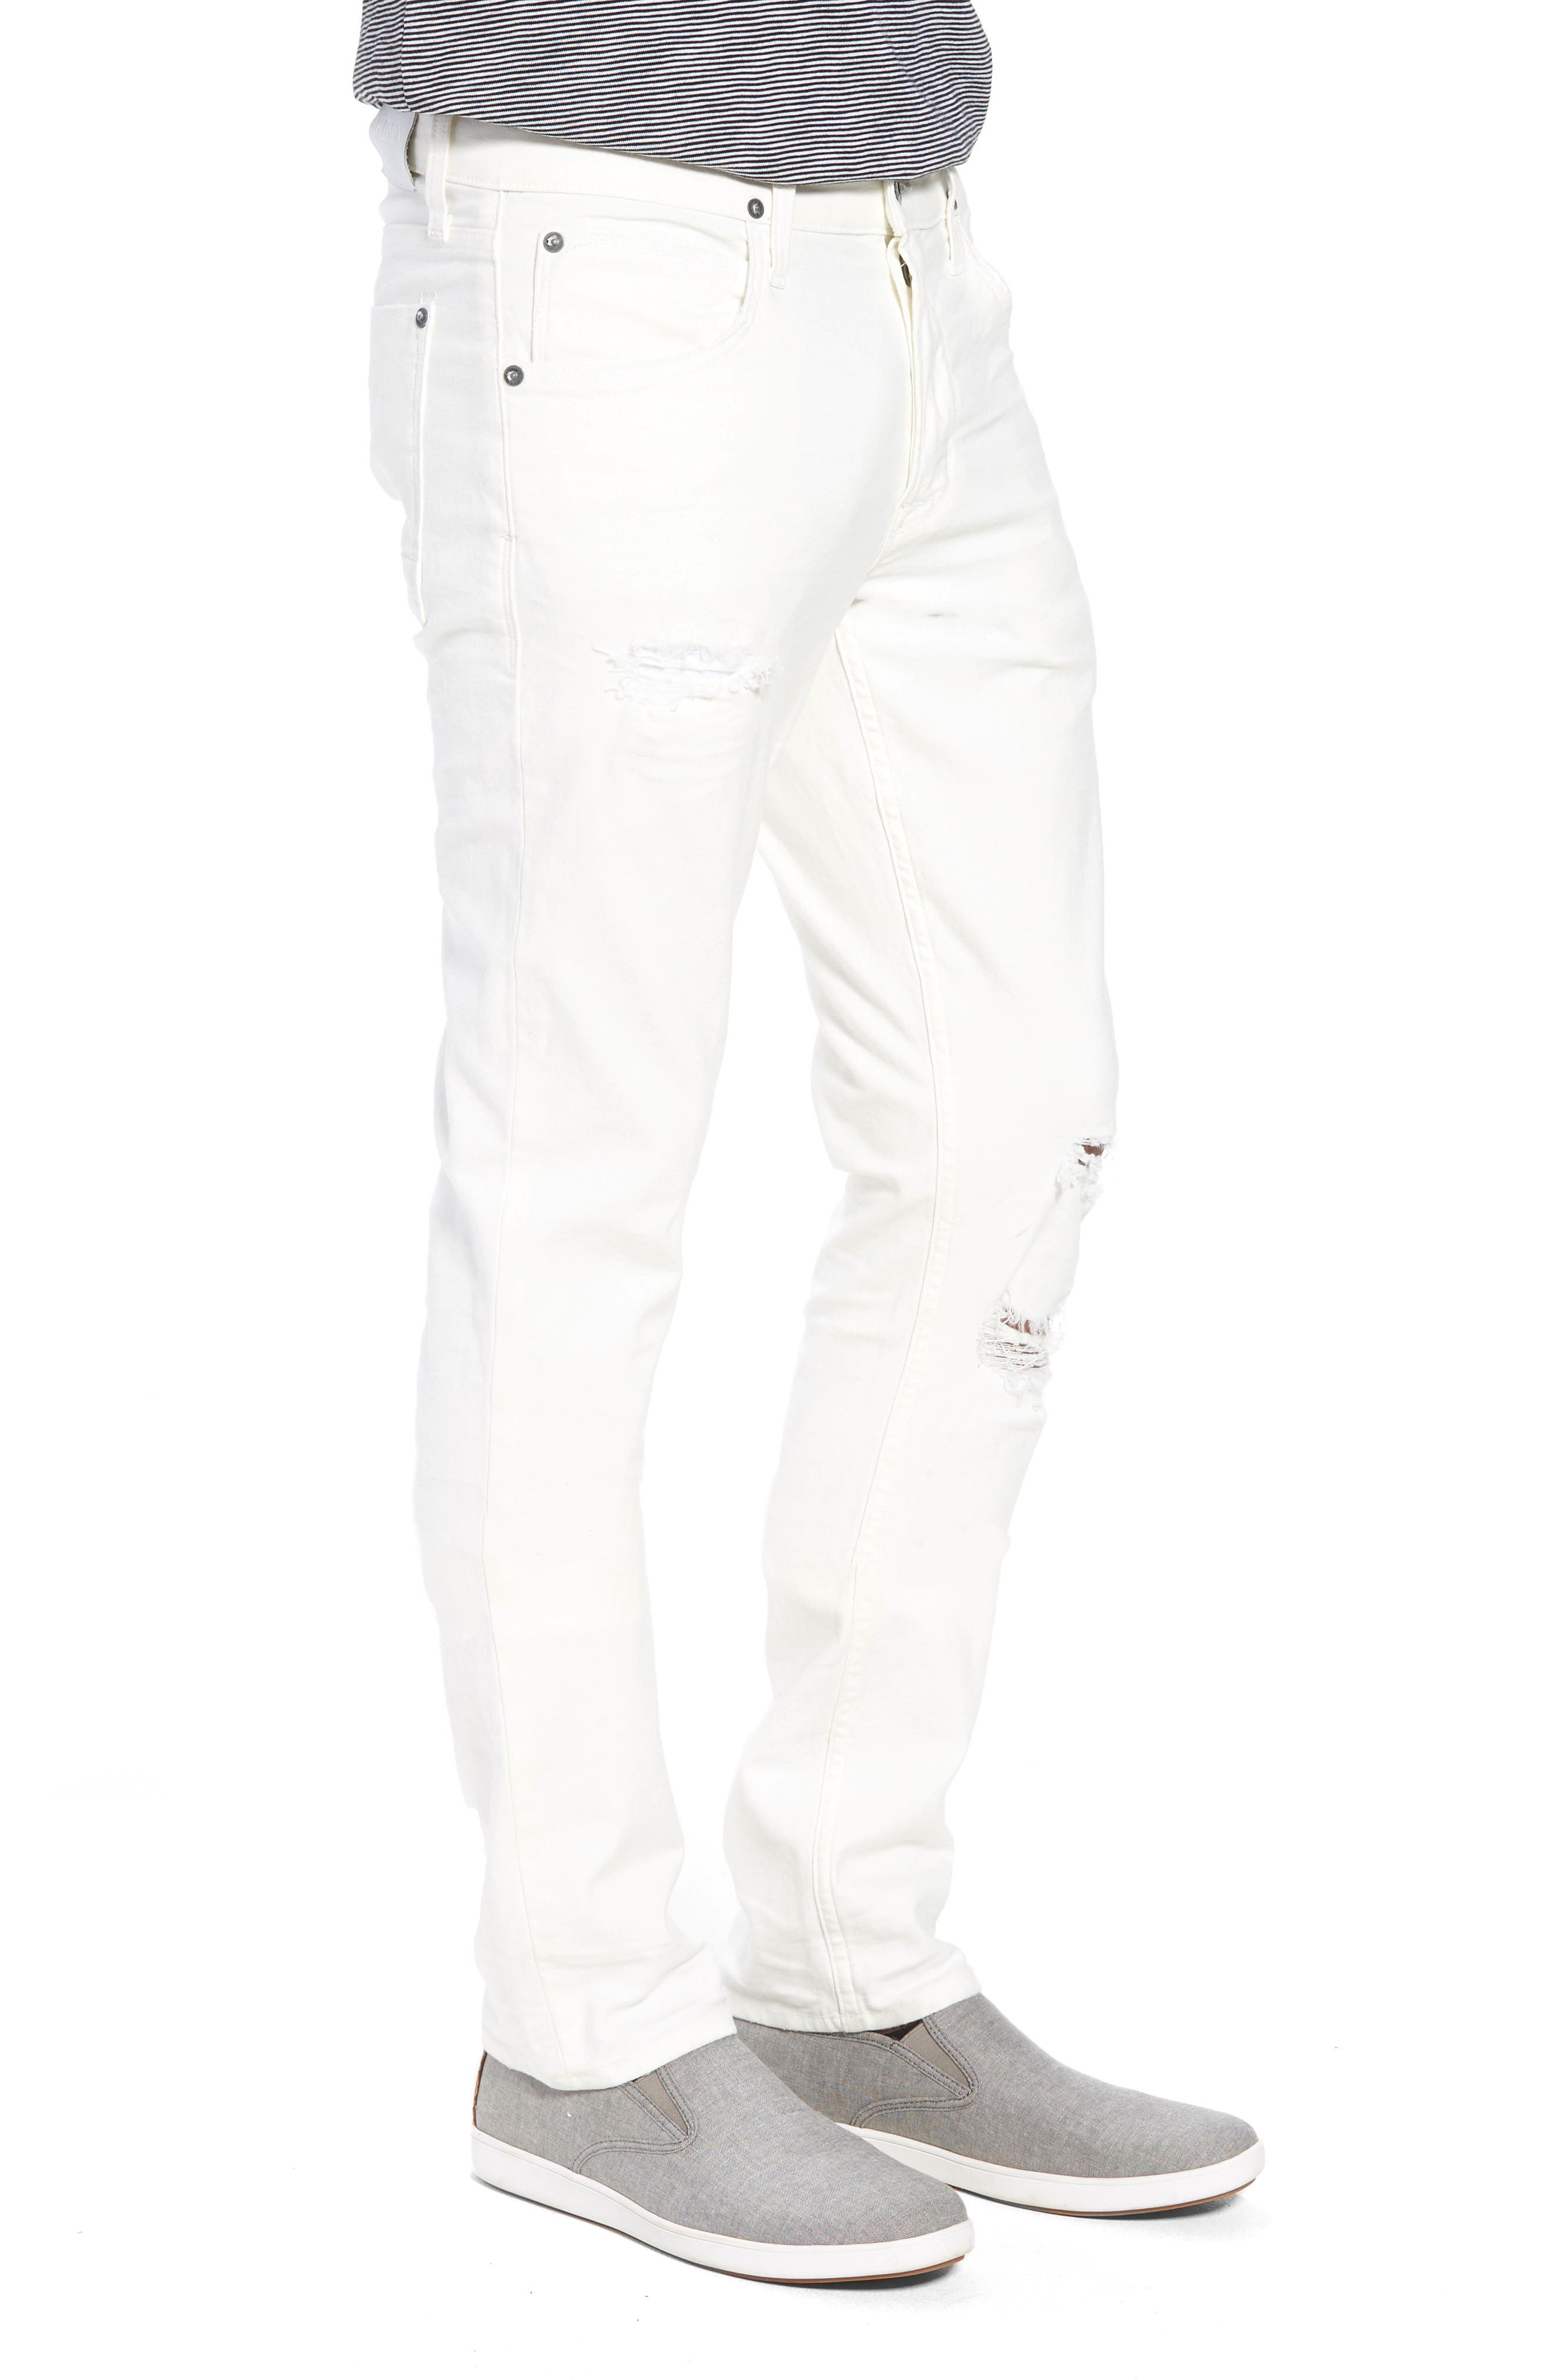 Blake Slim Fit Jeans,                             Alternate thumbnail 3, color,                             110